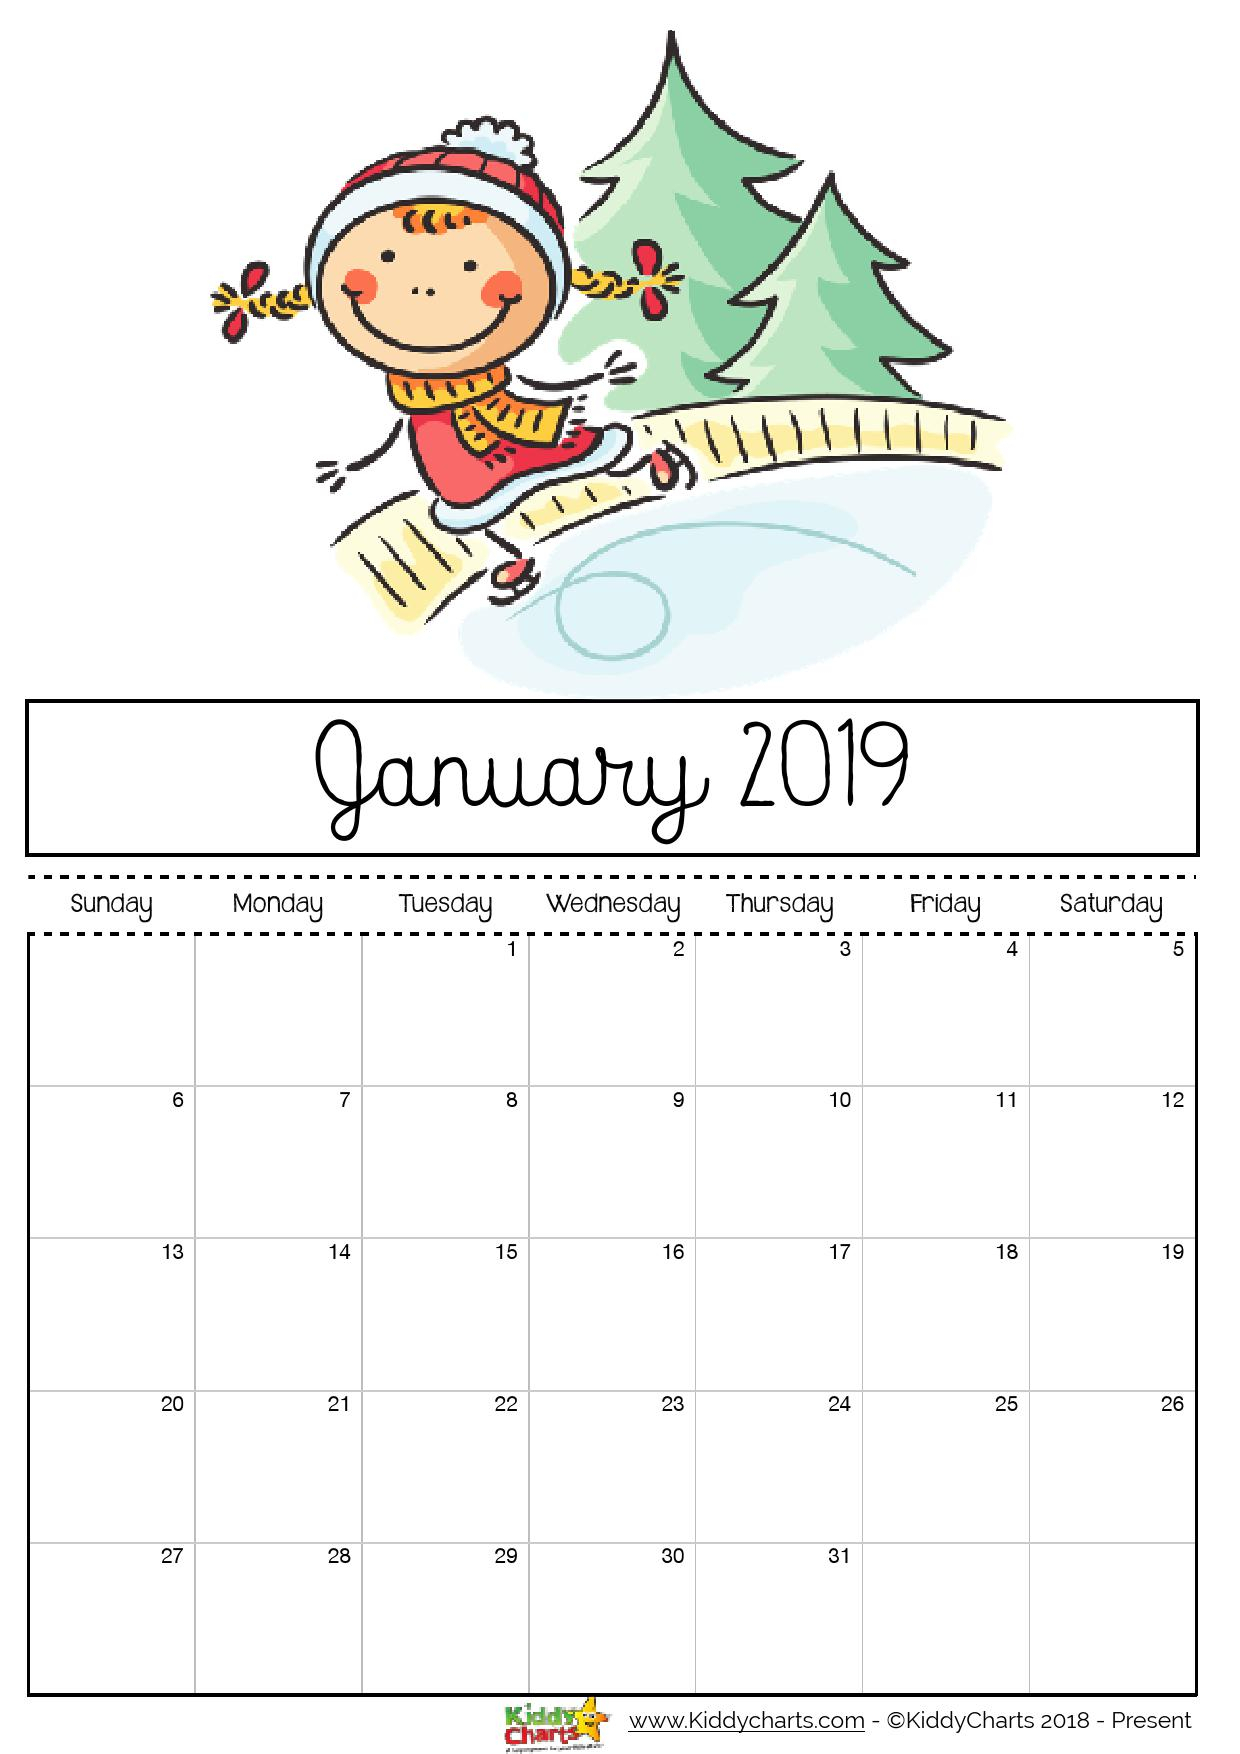 Free Printable 2019 Calendar - Print Yours Here | Kiddycharts throughout Empty Calendar Template For Kids